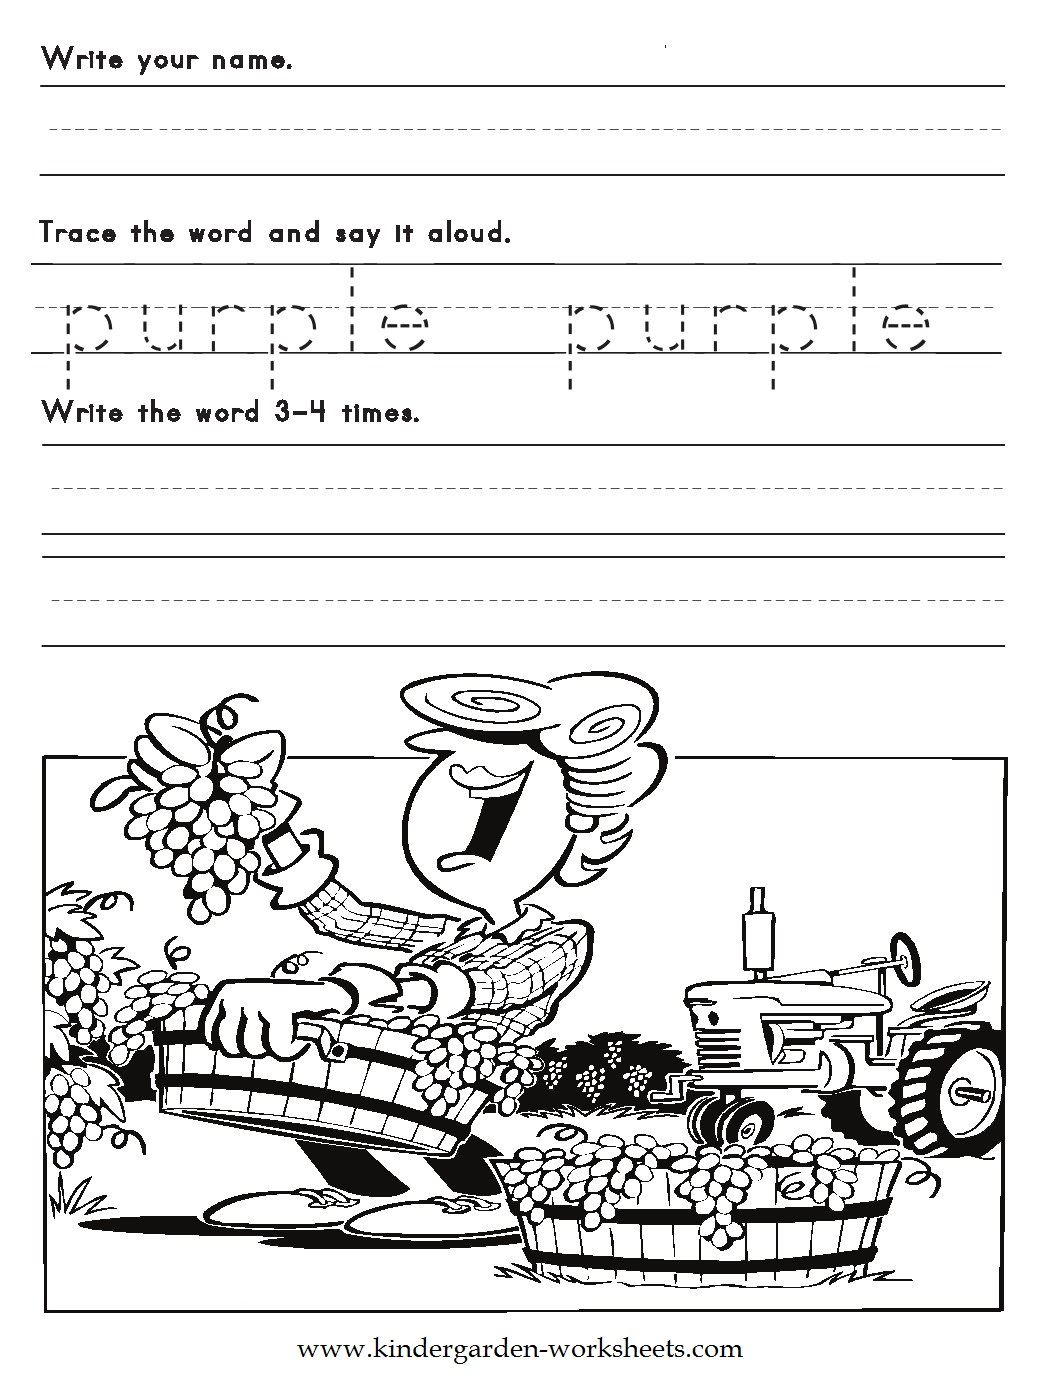 Kindergarten Worksheets Color Words Worksheets Purple – Kindergarten Color Word Worksheets